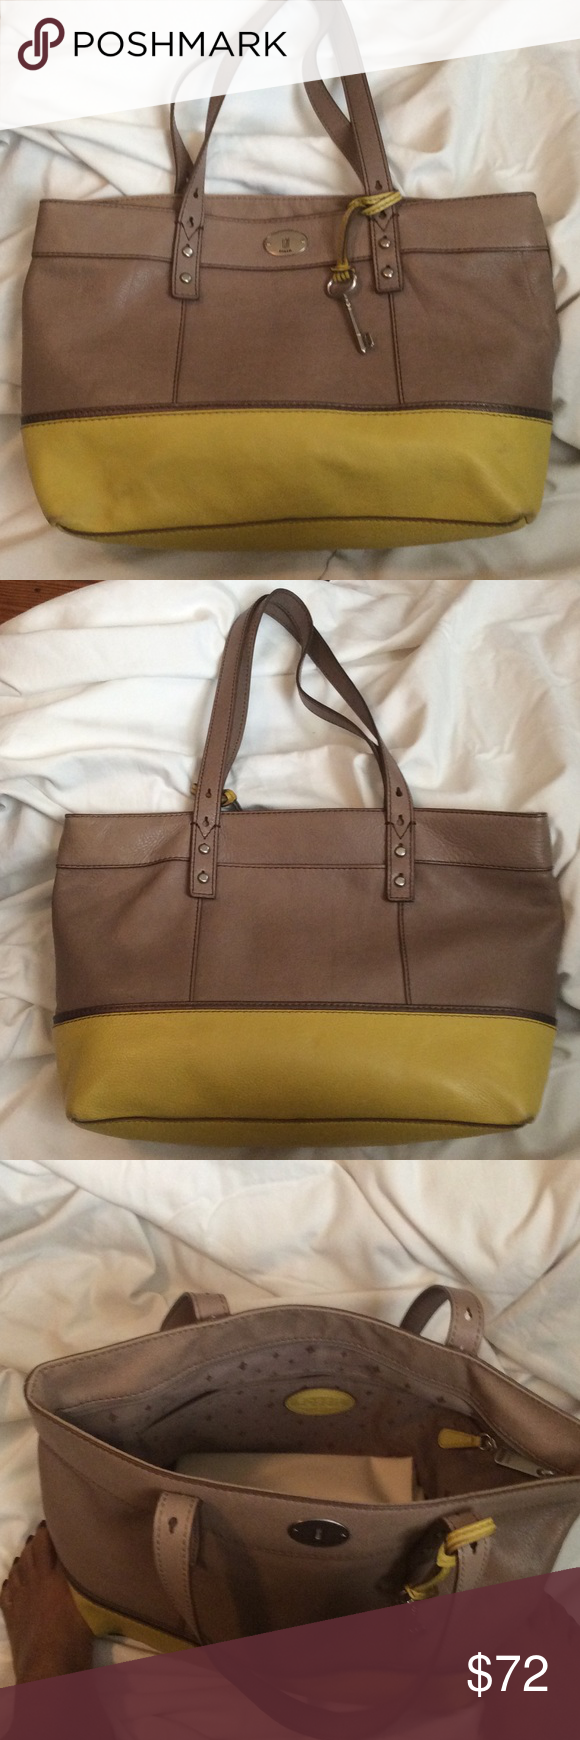 Leather  two-tone shoulder bag. Stylish, classic shape shoulder tote. Has the signature Fossil key & includes dust bag. Small smudge on left bottom corner. Fossil Bags Shoulder Bags